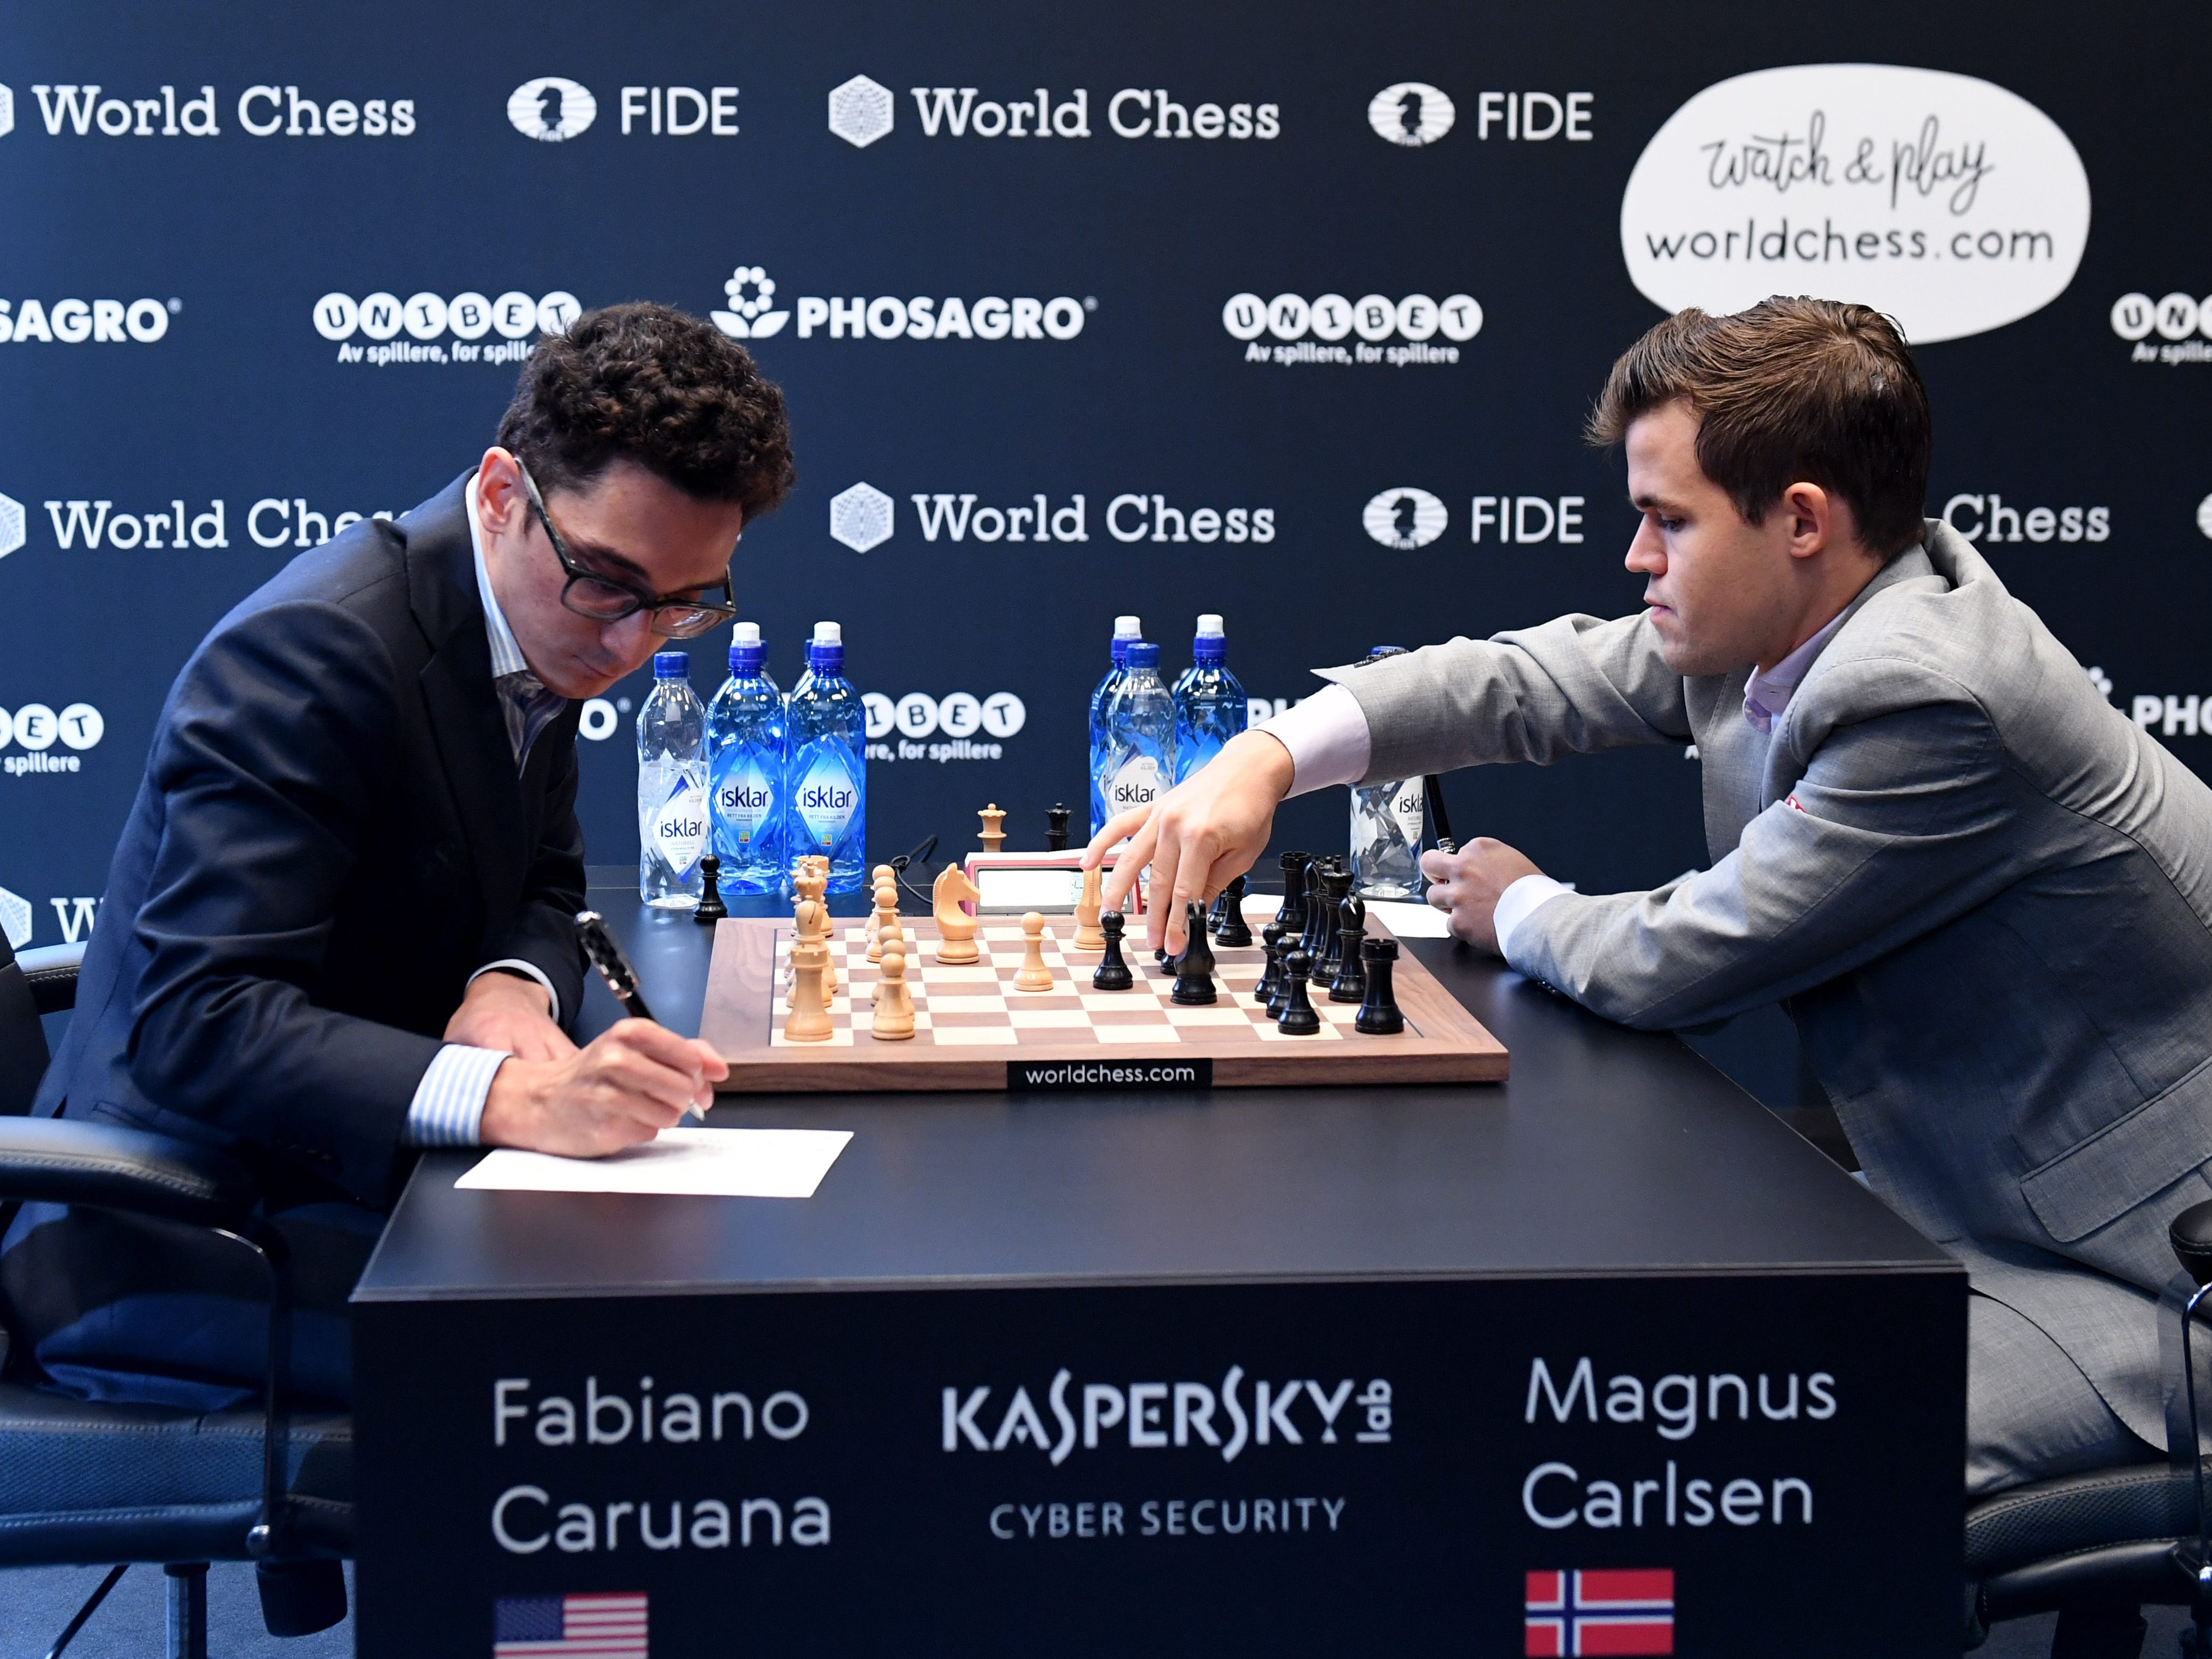 Reigning chess world champion Magnus Carlsen, right, plays against American challenger Fabiano Caruana during round 10 of the World Chess Championship, Nov. 22, 2018, in London.